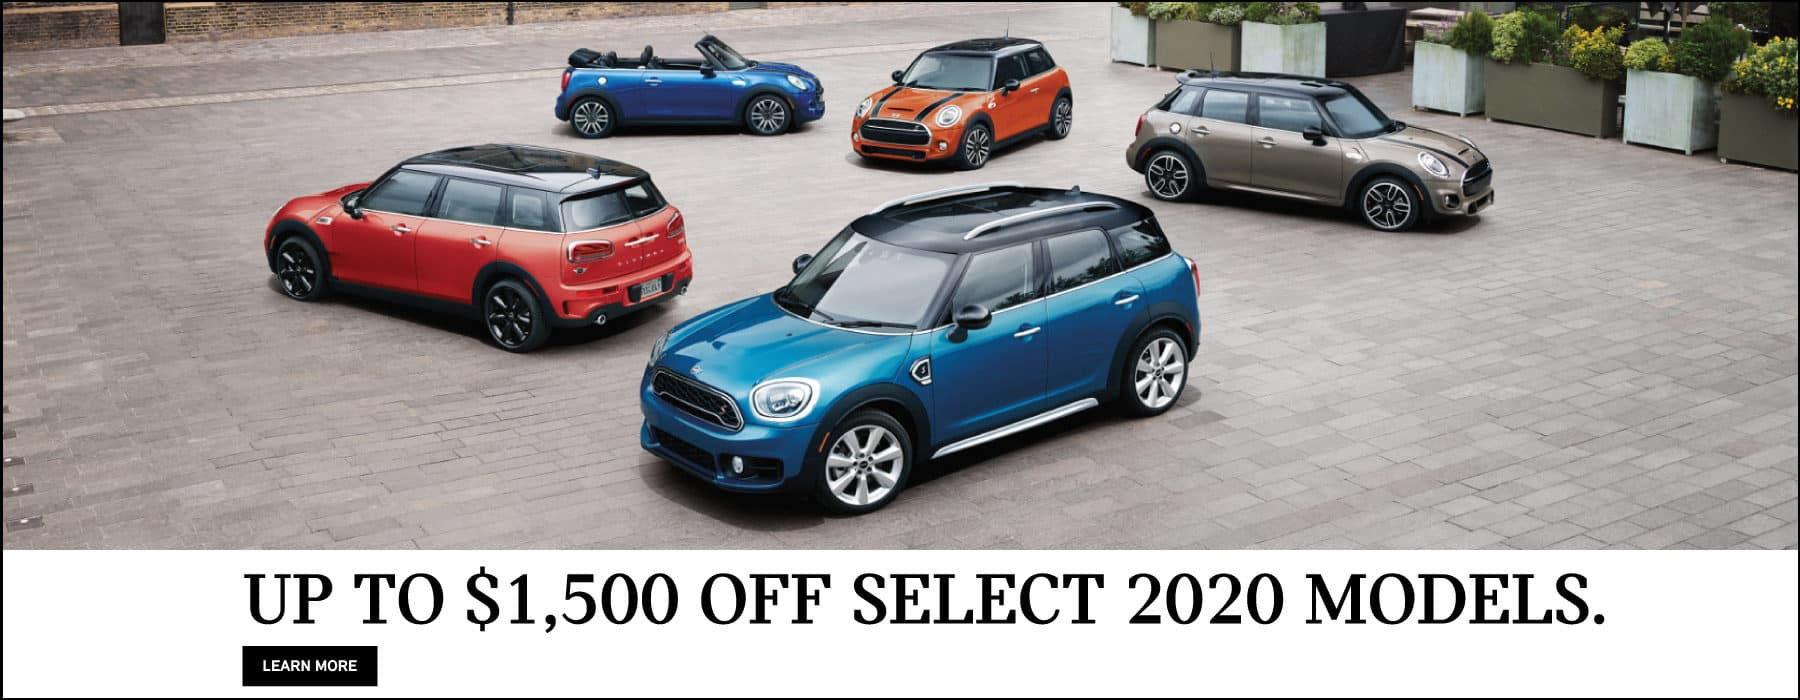 Up to $1,500 off select 2020 models. Family of MINI's parked in front of buildings.